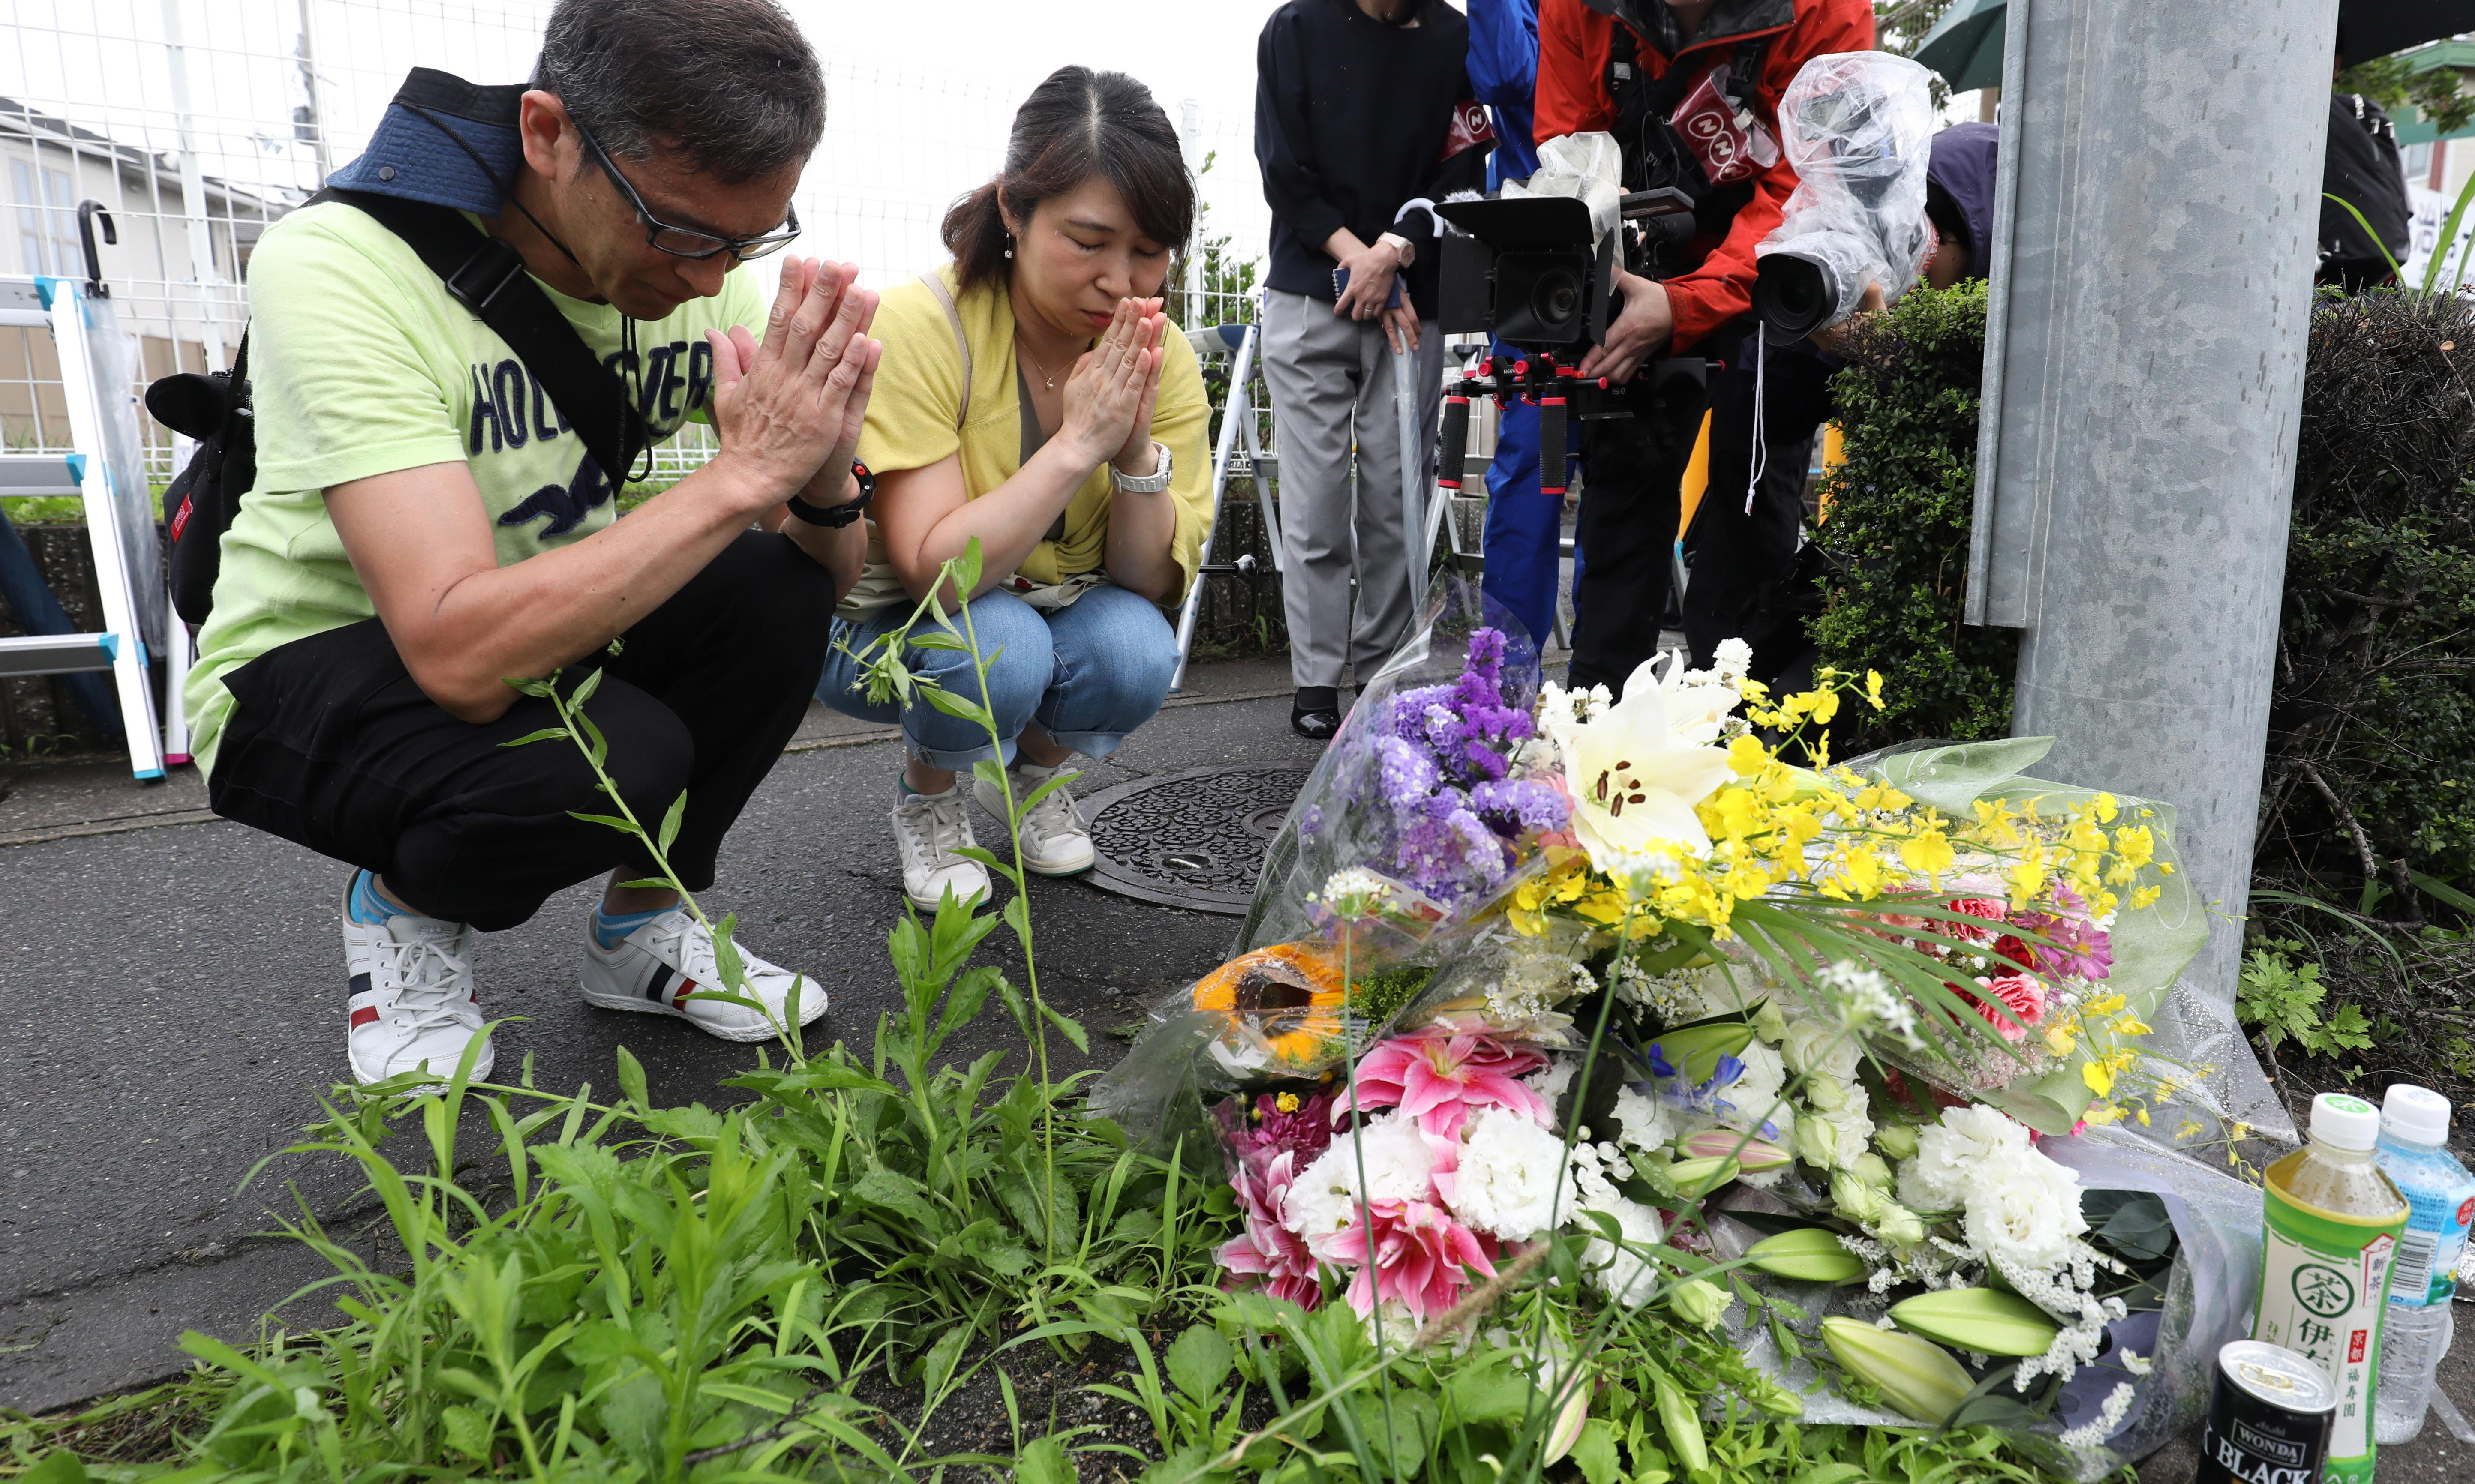 'Too painful': Kyoto anime fans join prime ministers in mourning fire victims